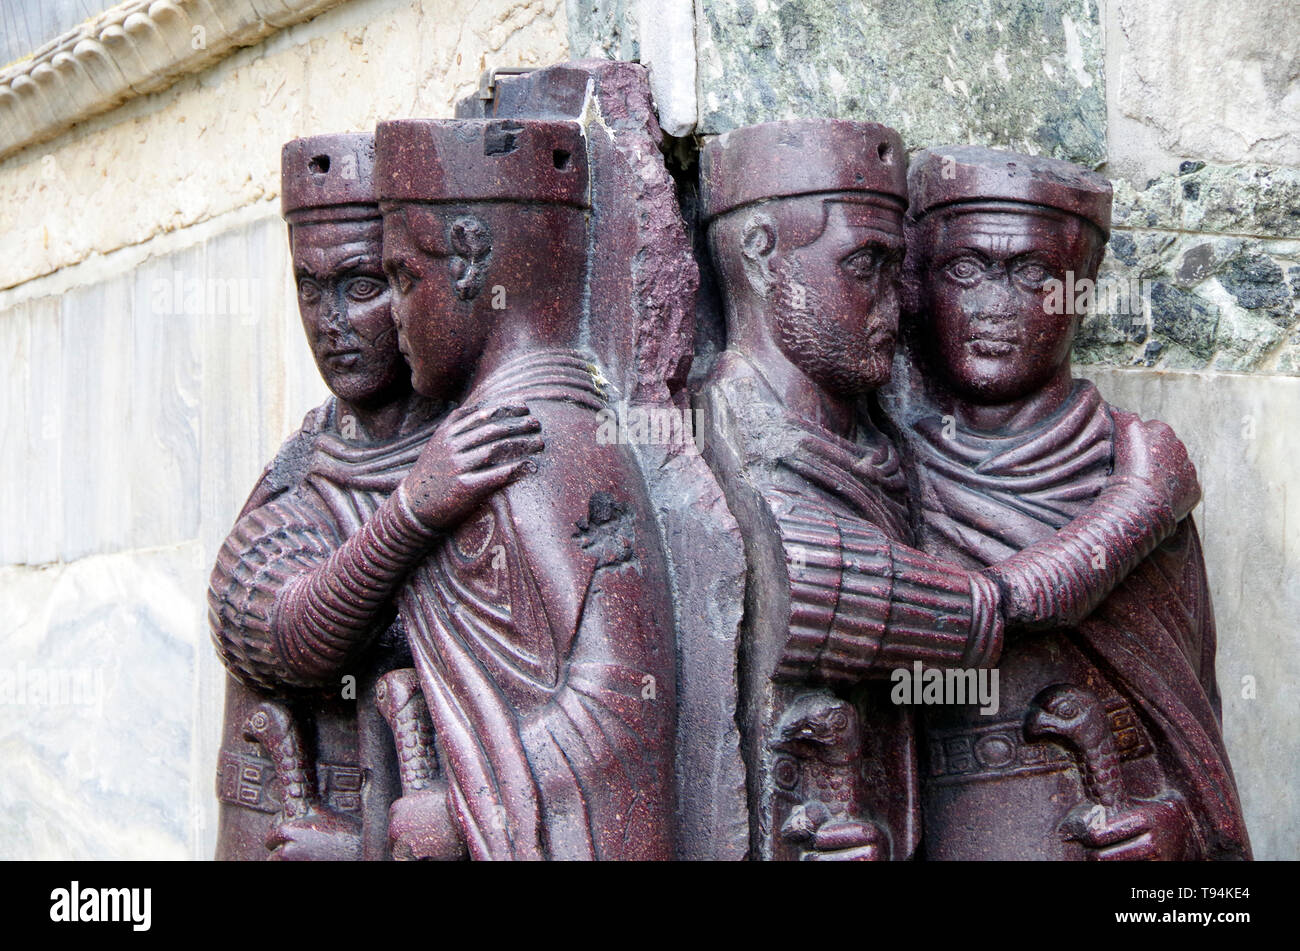 The red porphyry sculptured figures of the Tetrarchy, the four joint rulers of the Roman empire, looted from Constantinople in 1204 and now in Venice. - Stock Image